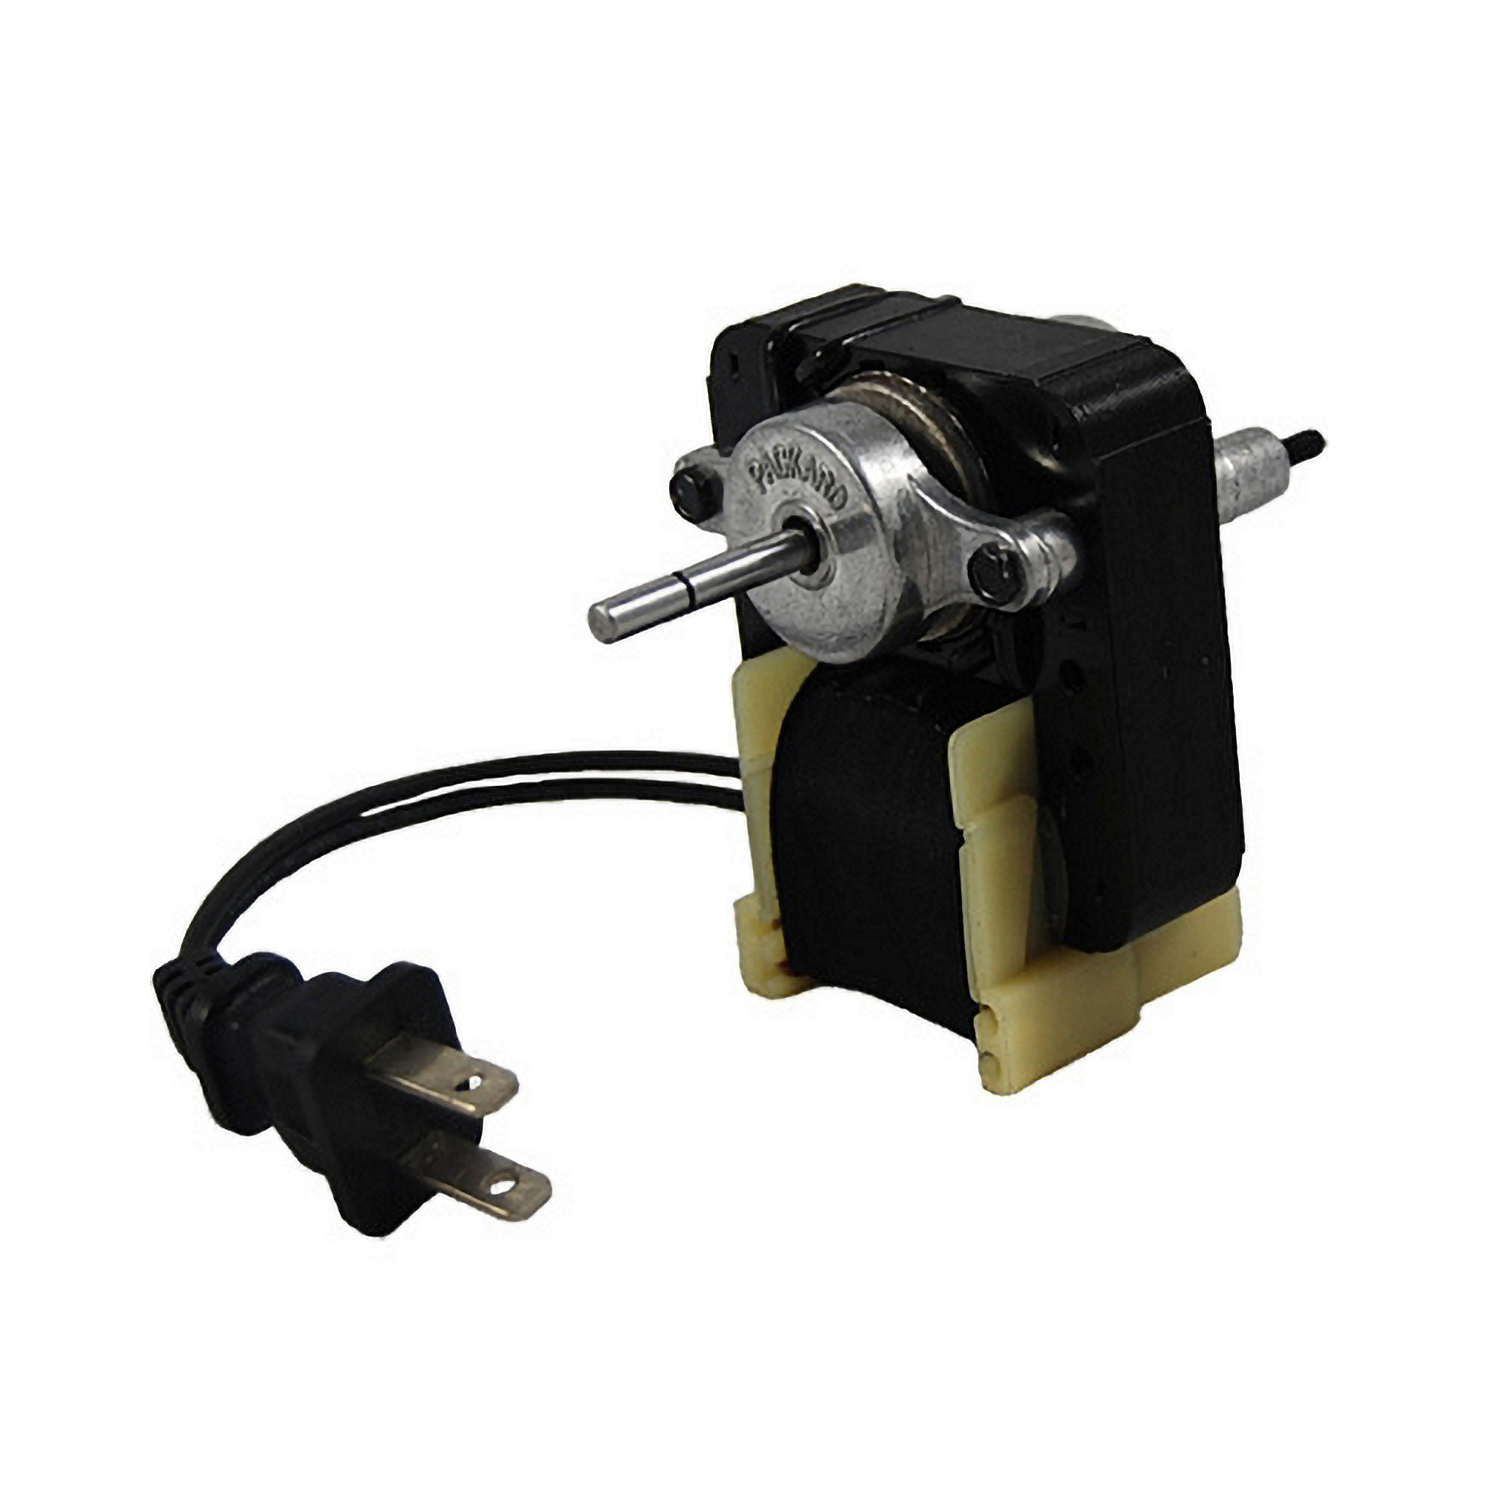 hight resolution of c frame utility fan motor 5 8 stack size 115 volt 2750 rpm packard online